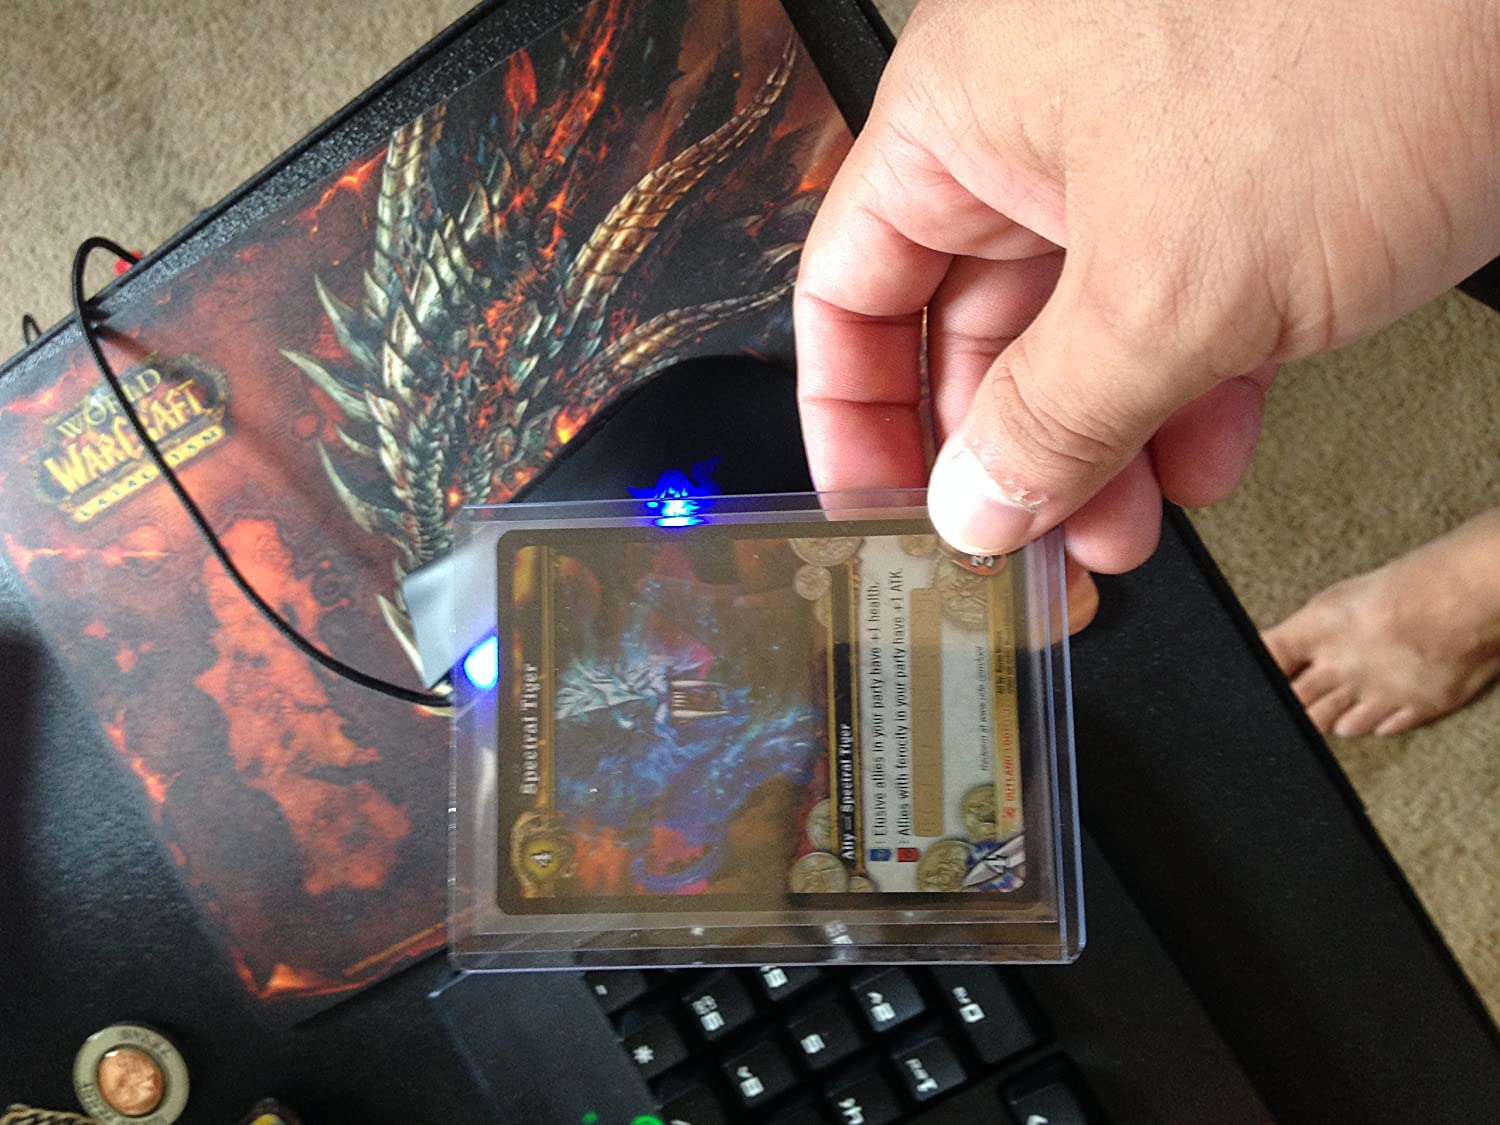 Spectral Tiger In Game Mount Unscratched Loot Card World of Warcraft  Collecti